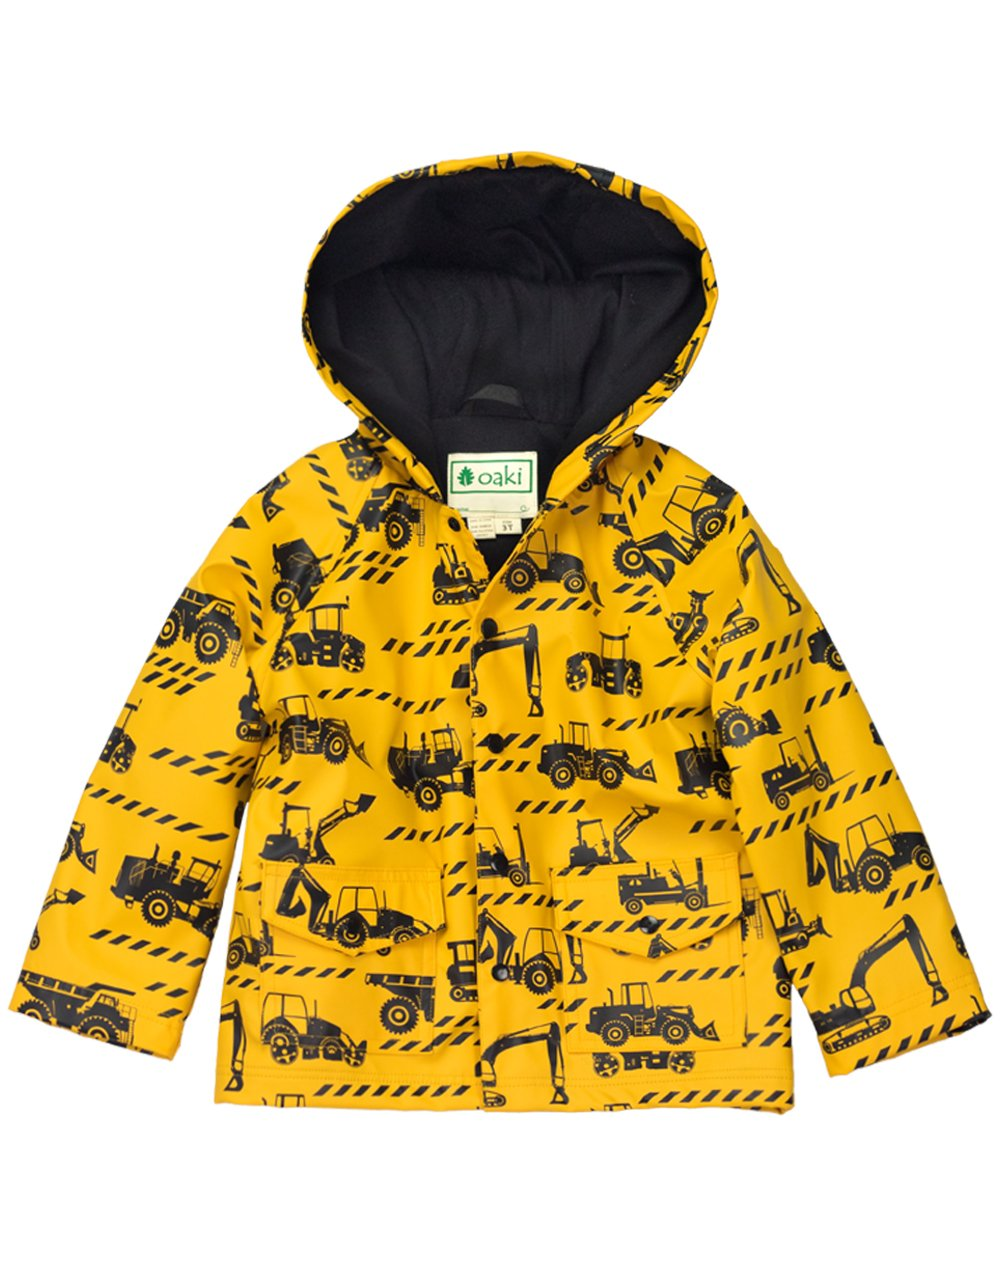 Oakiwear Children's Rain Jacket, Construction Vehicles 8